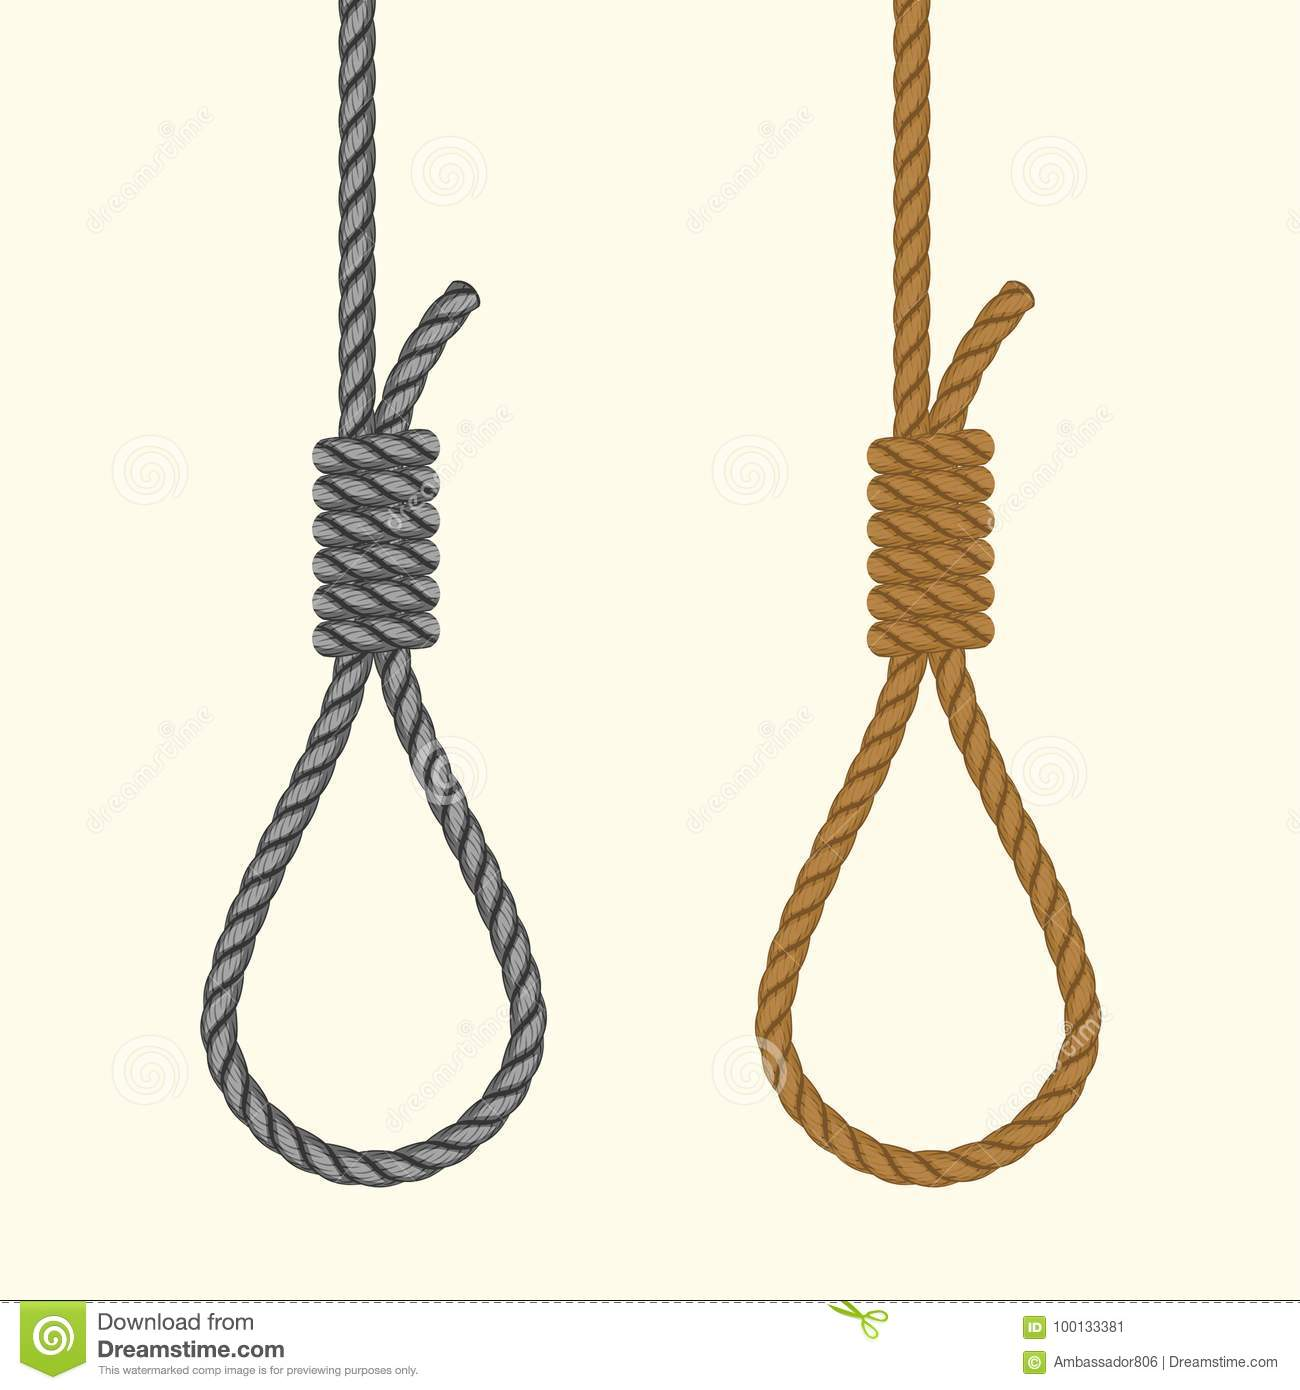 hight resolution of noose with hangmans knot suicide death penalty by hanging